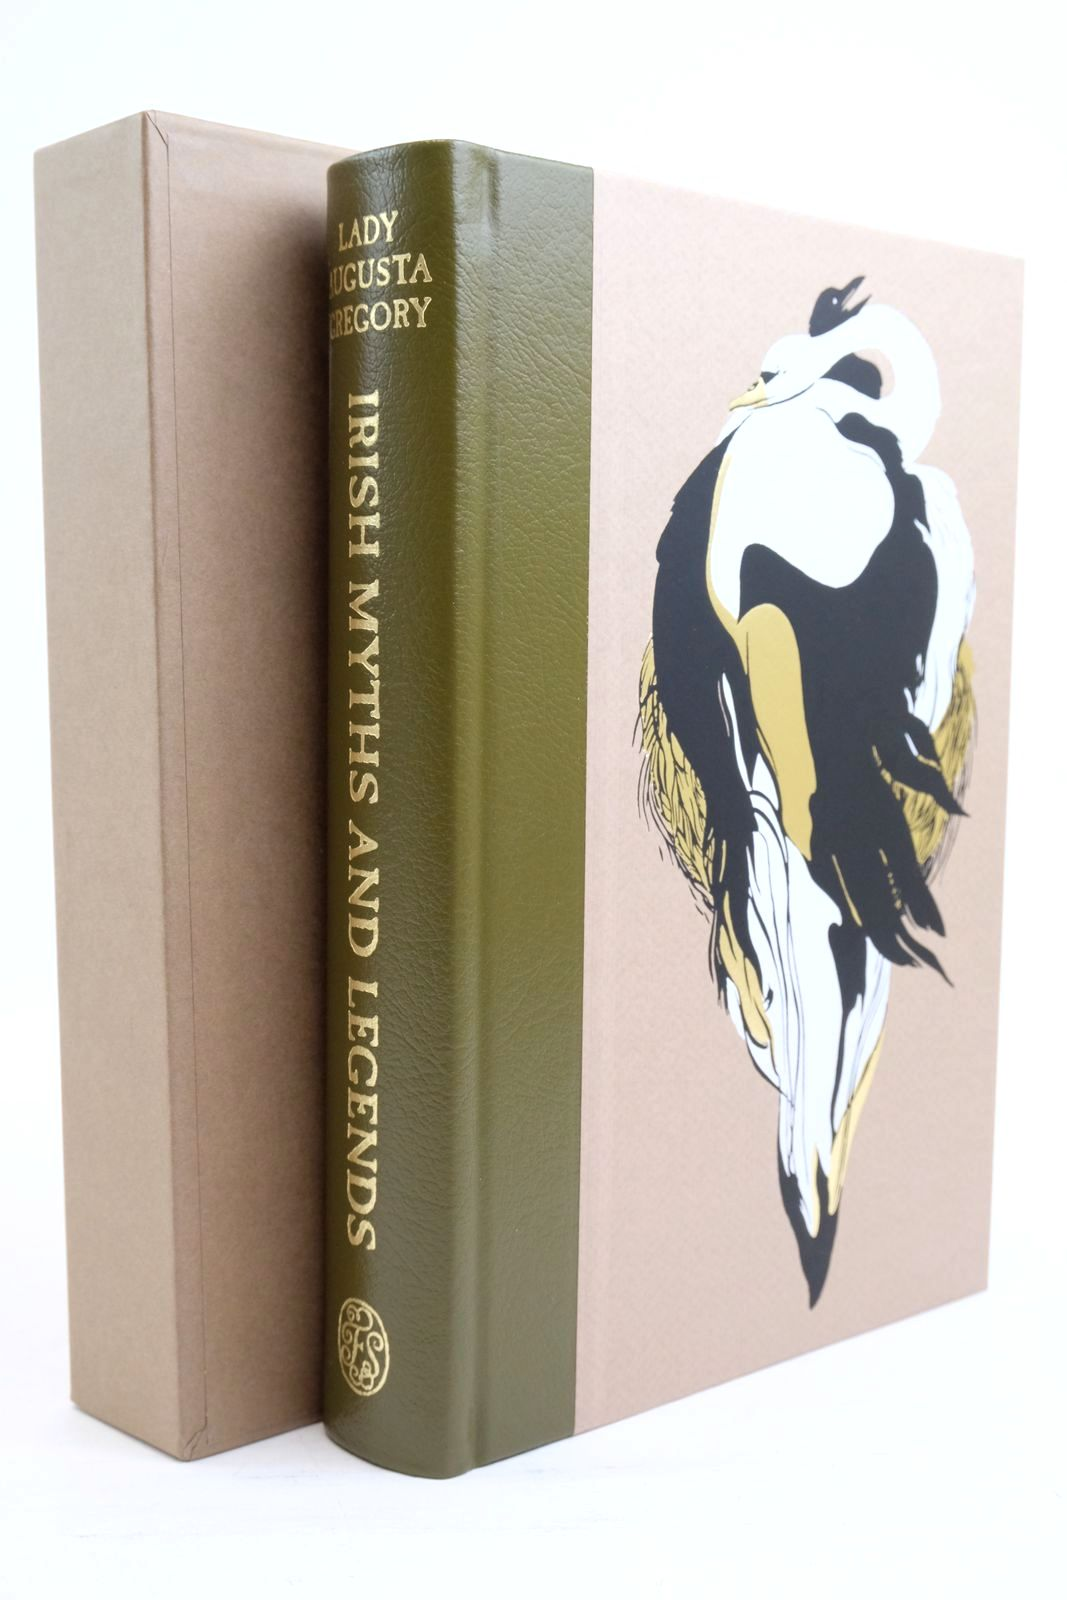 Photo of IRISH MYTHS AND LEGENDS written by Gregory, Augusta Yeats, W.B. Toibin, Colm illustrated by Tamaki, Jillian published by Folio Society (STOCK CODE: 1321067)  for sale by Stella & Rose's Books